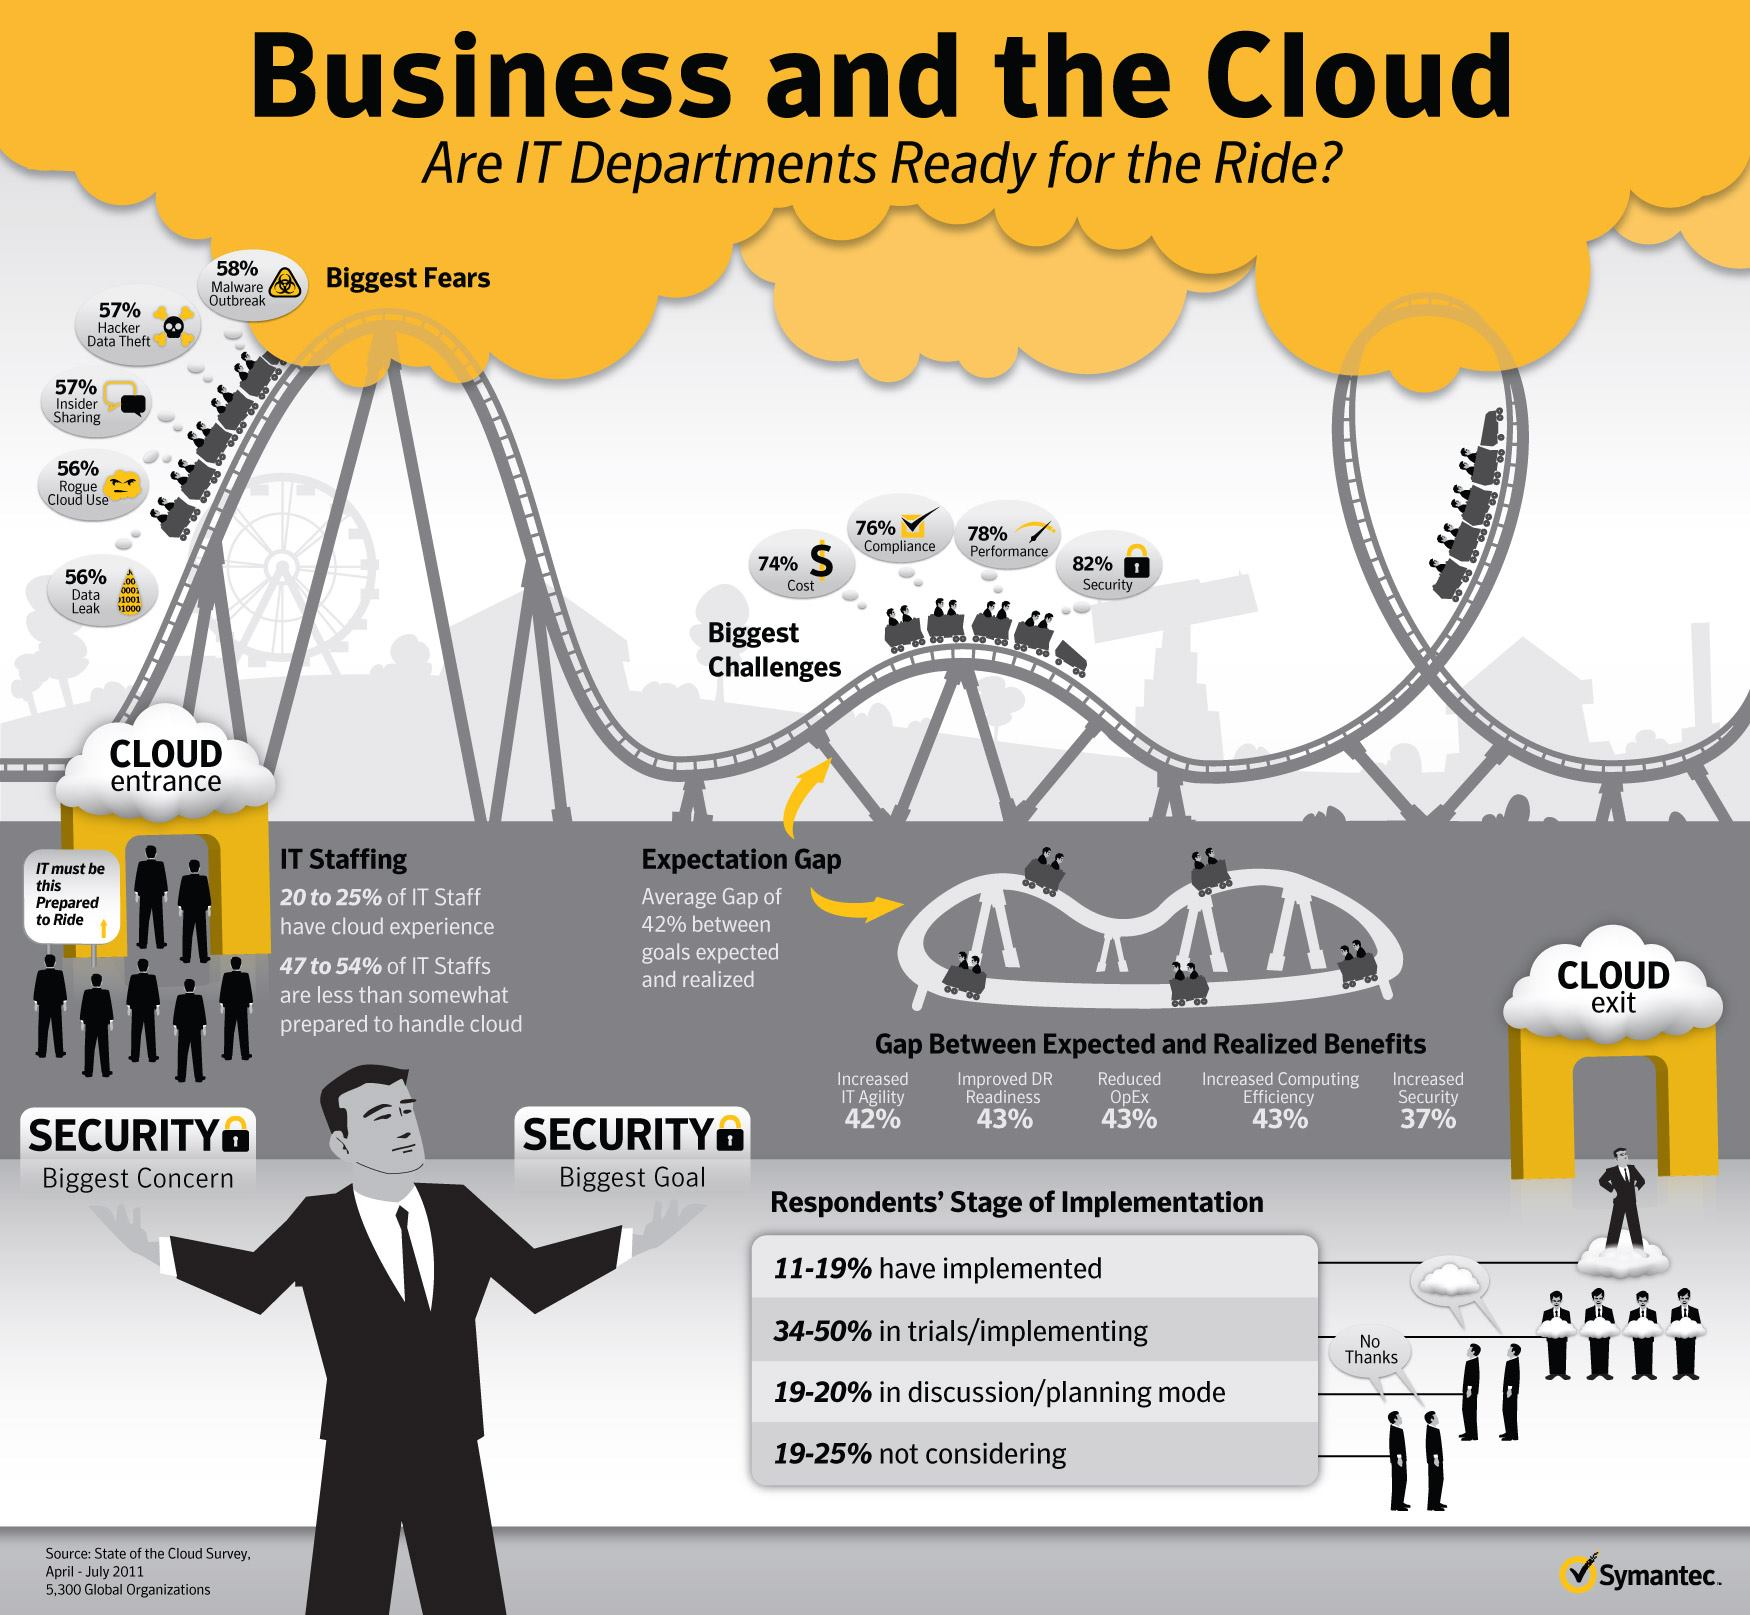 business-and-the-cloud_504ebfdca1d51